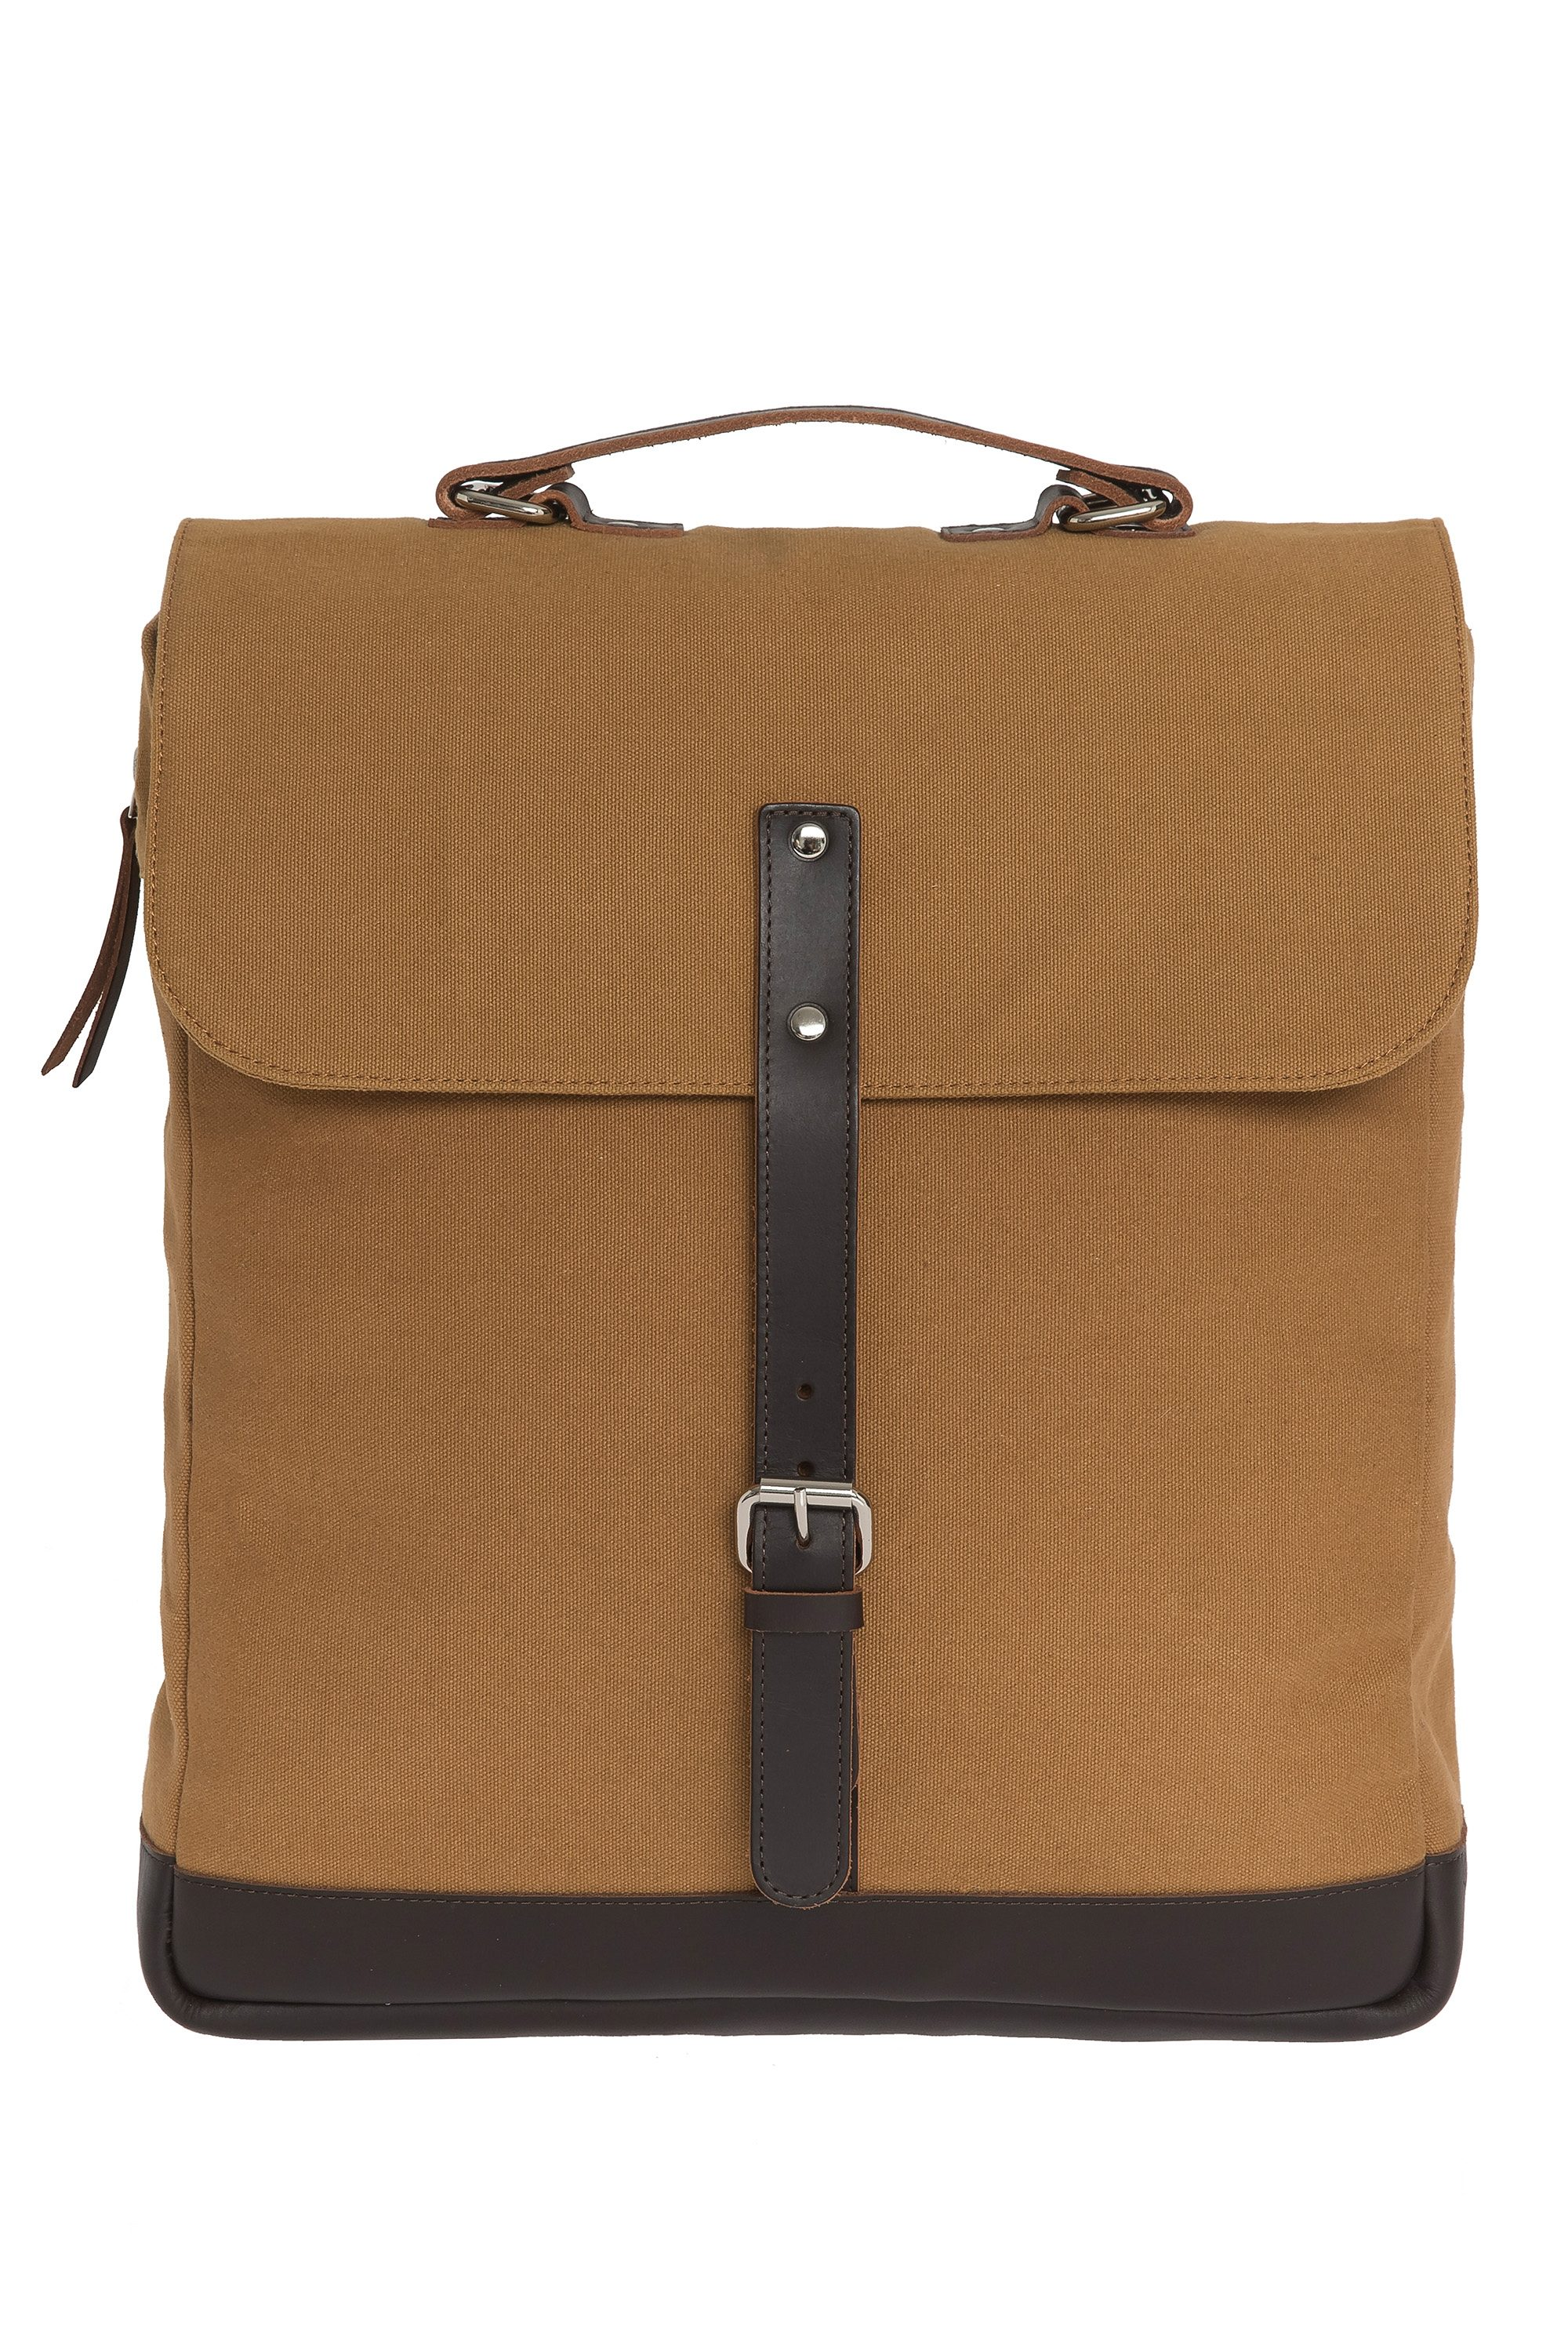 Enter Messenger Rucksack, »Messenger Backpack, Khaki/Dark Brown«